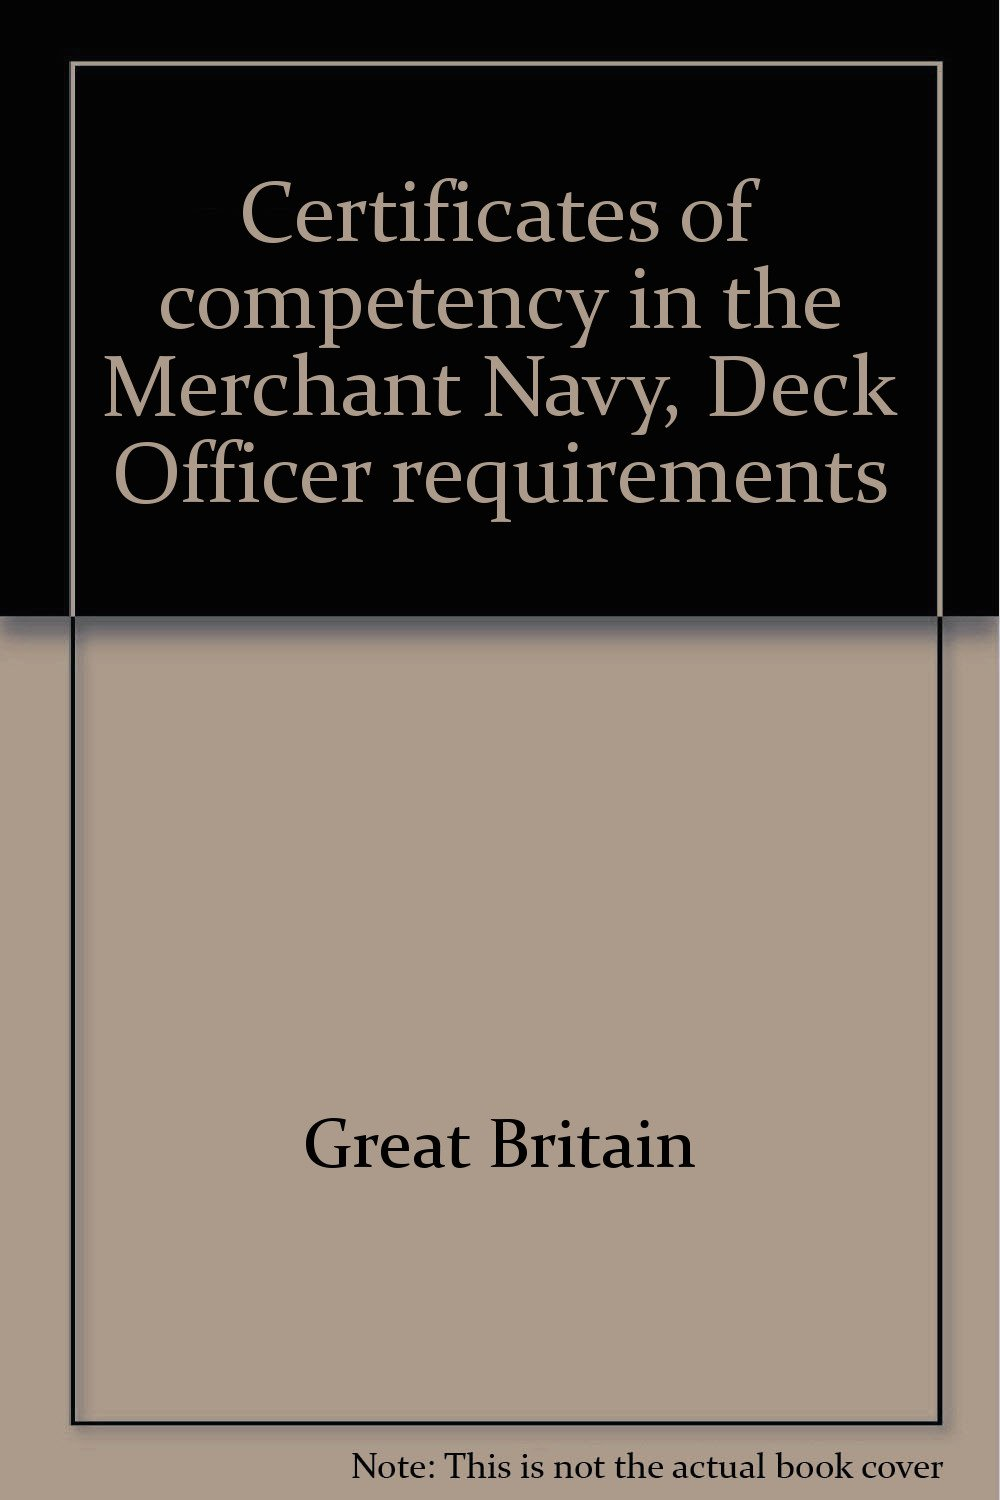 Certificates of competency in the Merchant Navy, Deck Officer